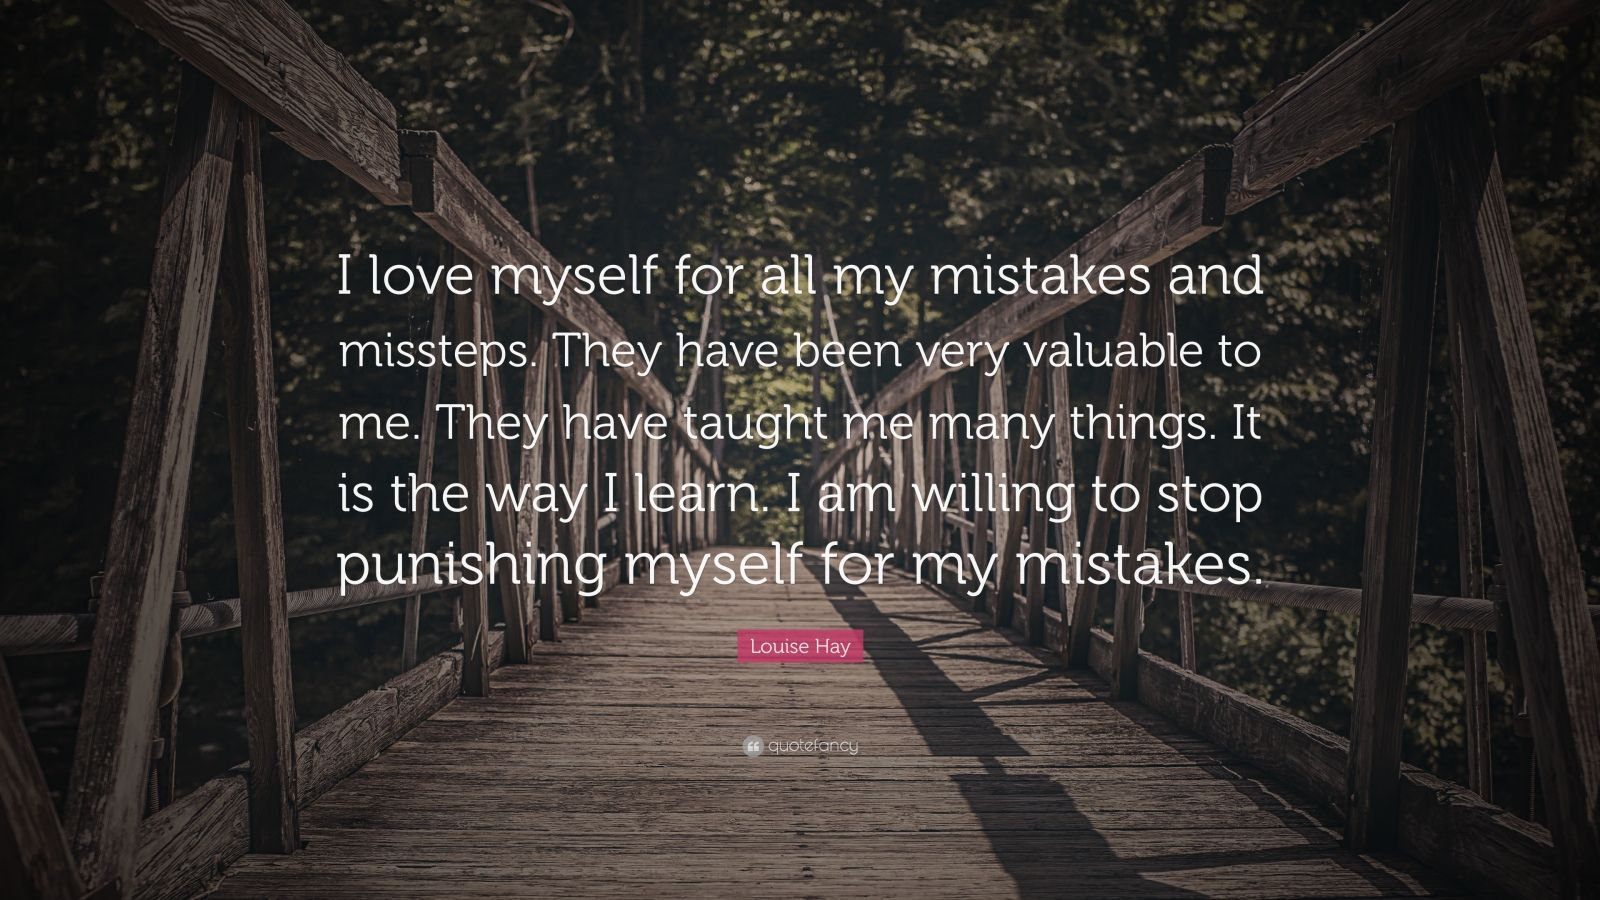 """Louise Hay Quote: """"I love myself for all my mistakes and missteps. They have been very valuable to me. They have taught me many things. It is the way I learn. I am willing to stop punishing myself for my mistakes."""""""